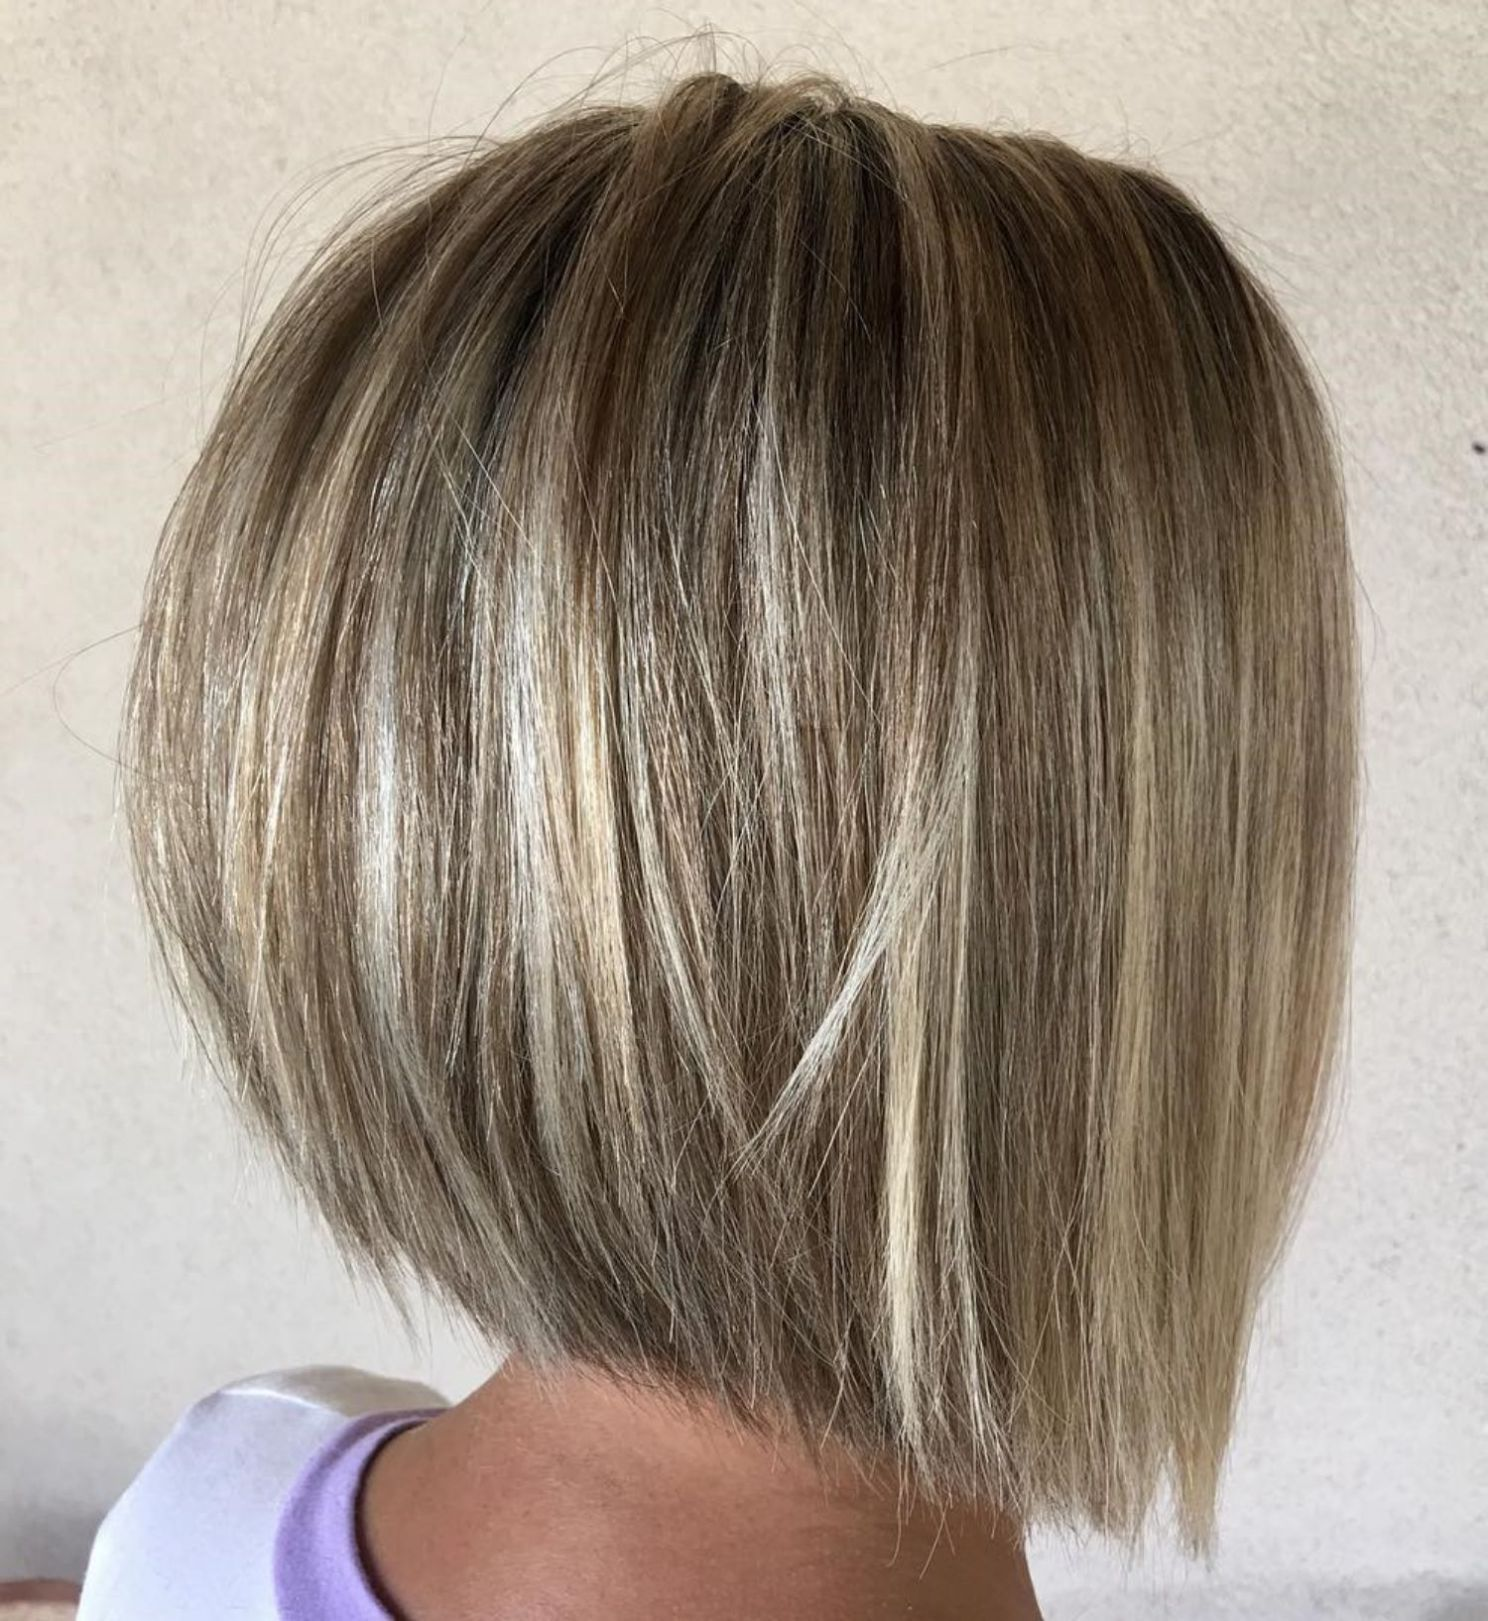 Layered Inverted Bob For Straight Hair Hair Styles Straight Hairstyles Short Bob Hairstyles